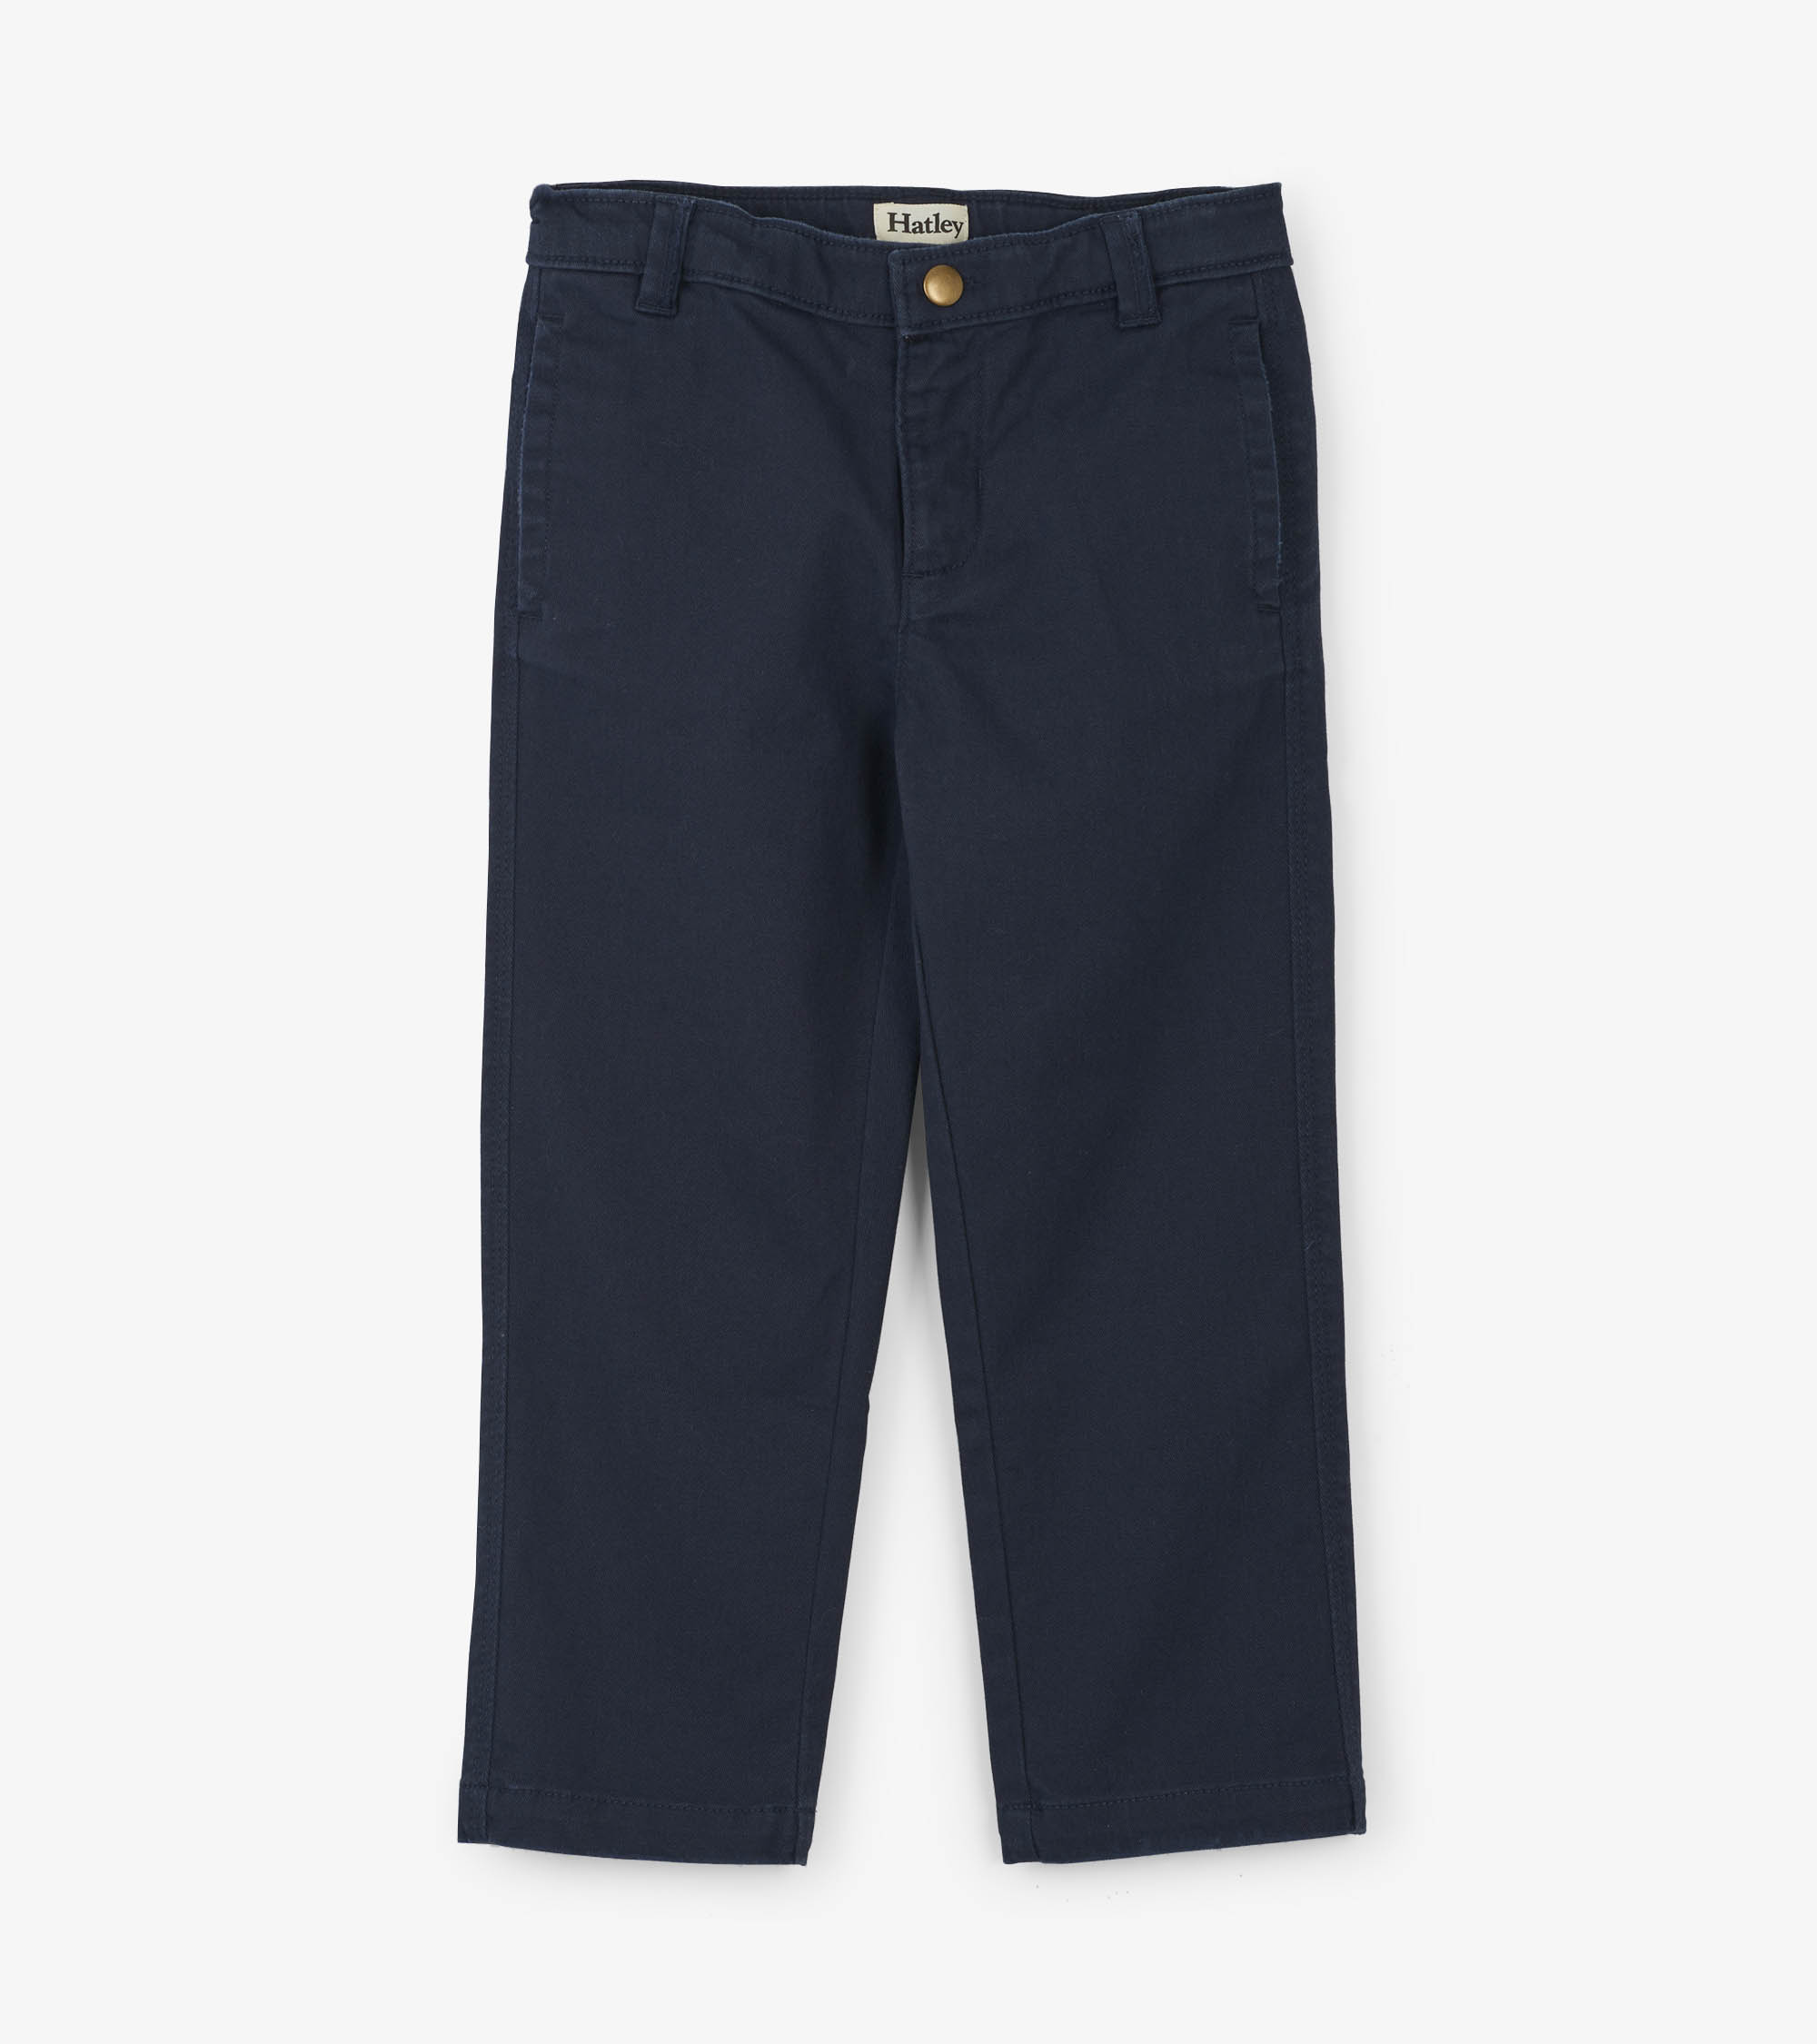 NOW £12 Hatley Stretch Twill Trousers Navy (Was £24)